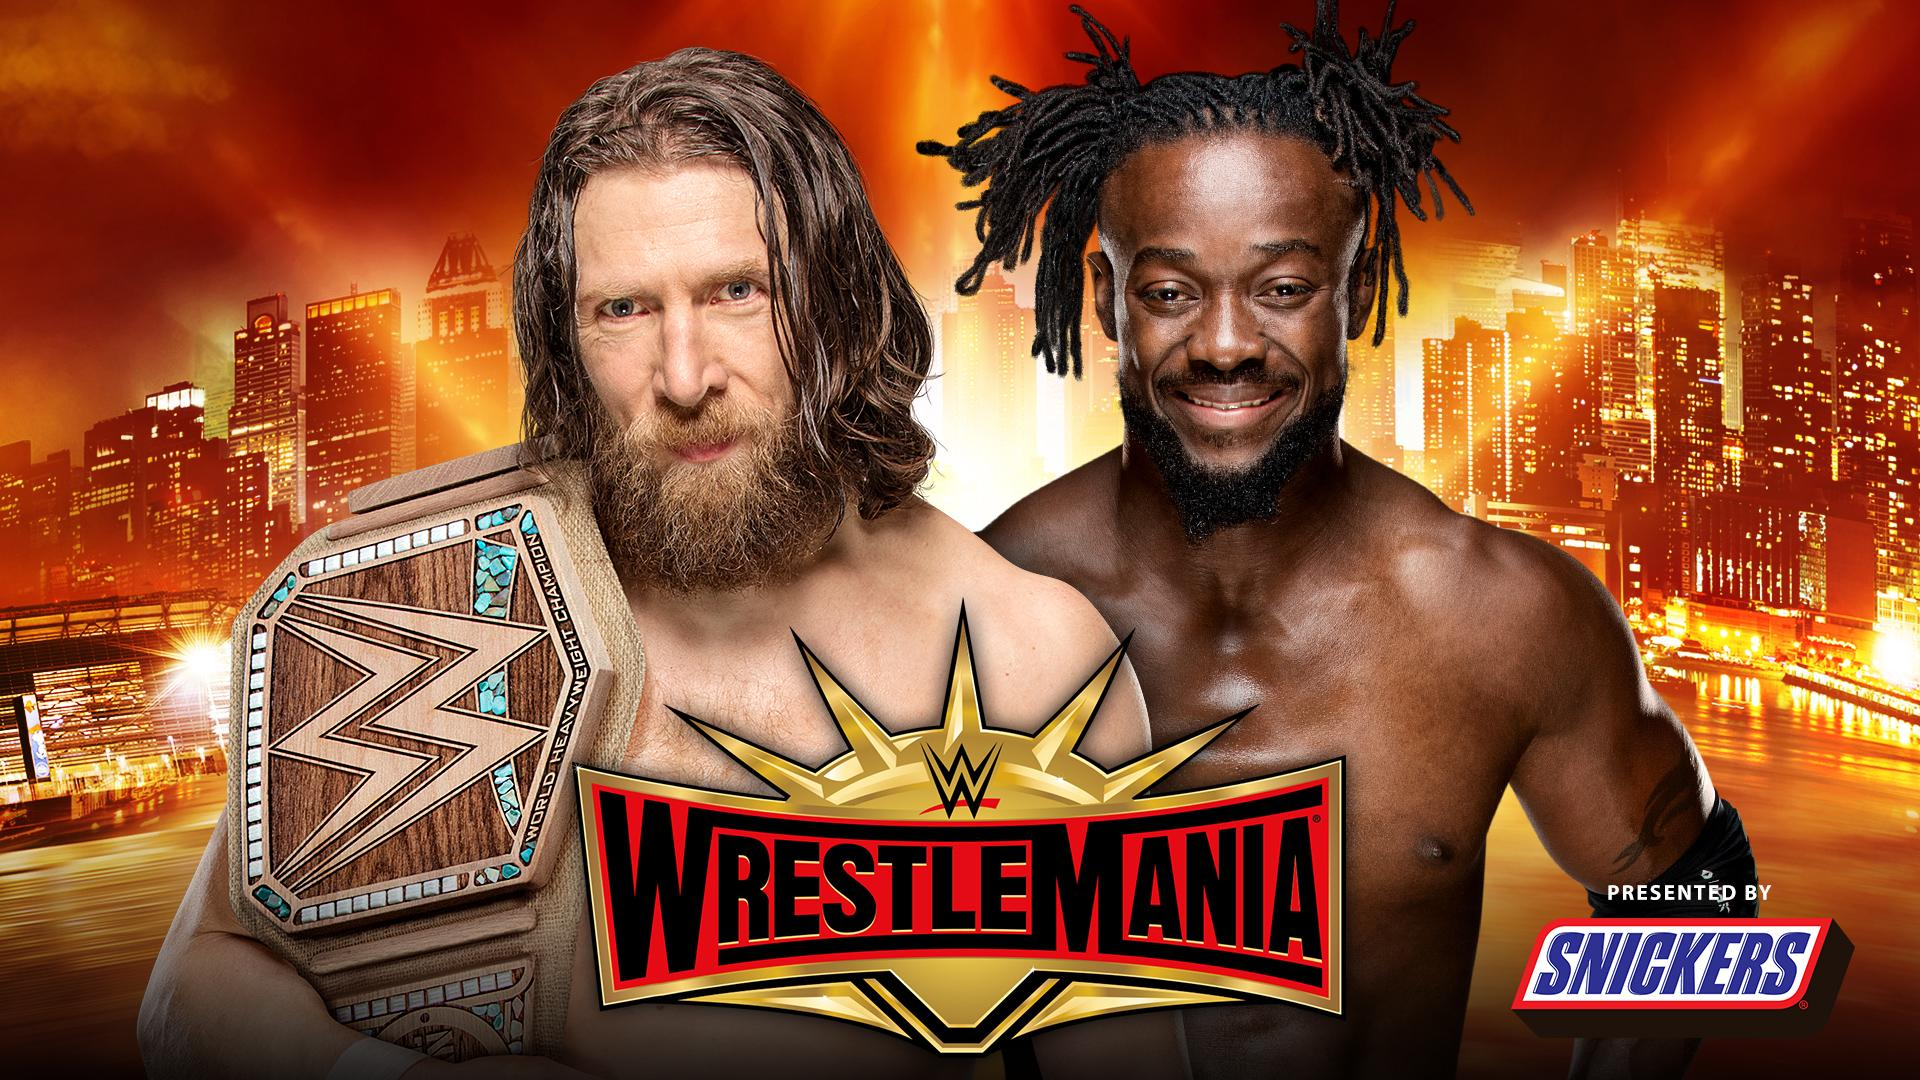 Daniel Bryan vs. Kofi Kingston por el Campeonato WWE en WWE WrestleMania 35 (07/04/2019) / WWE